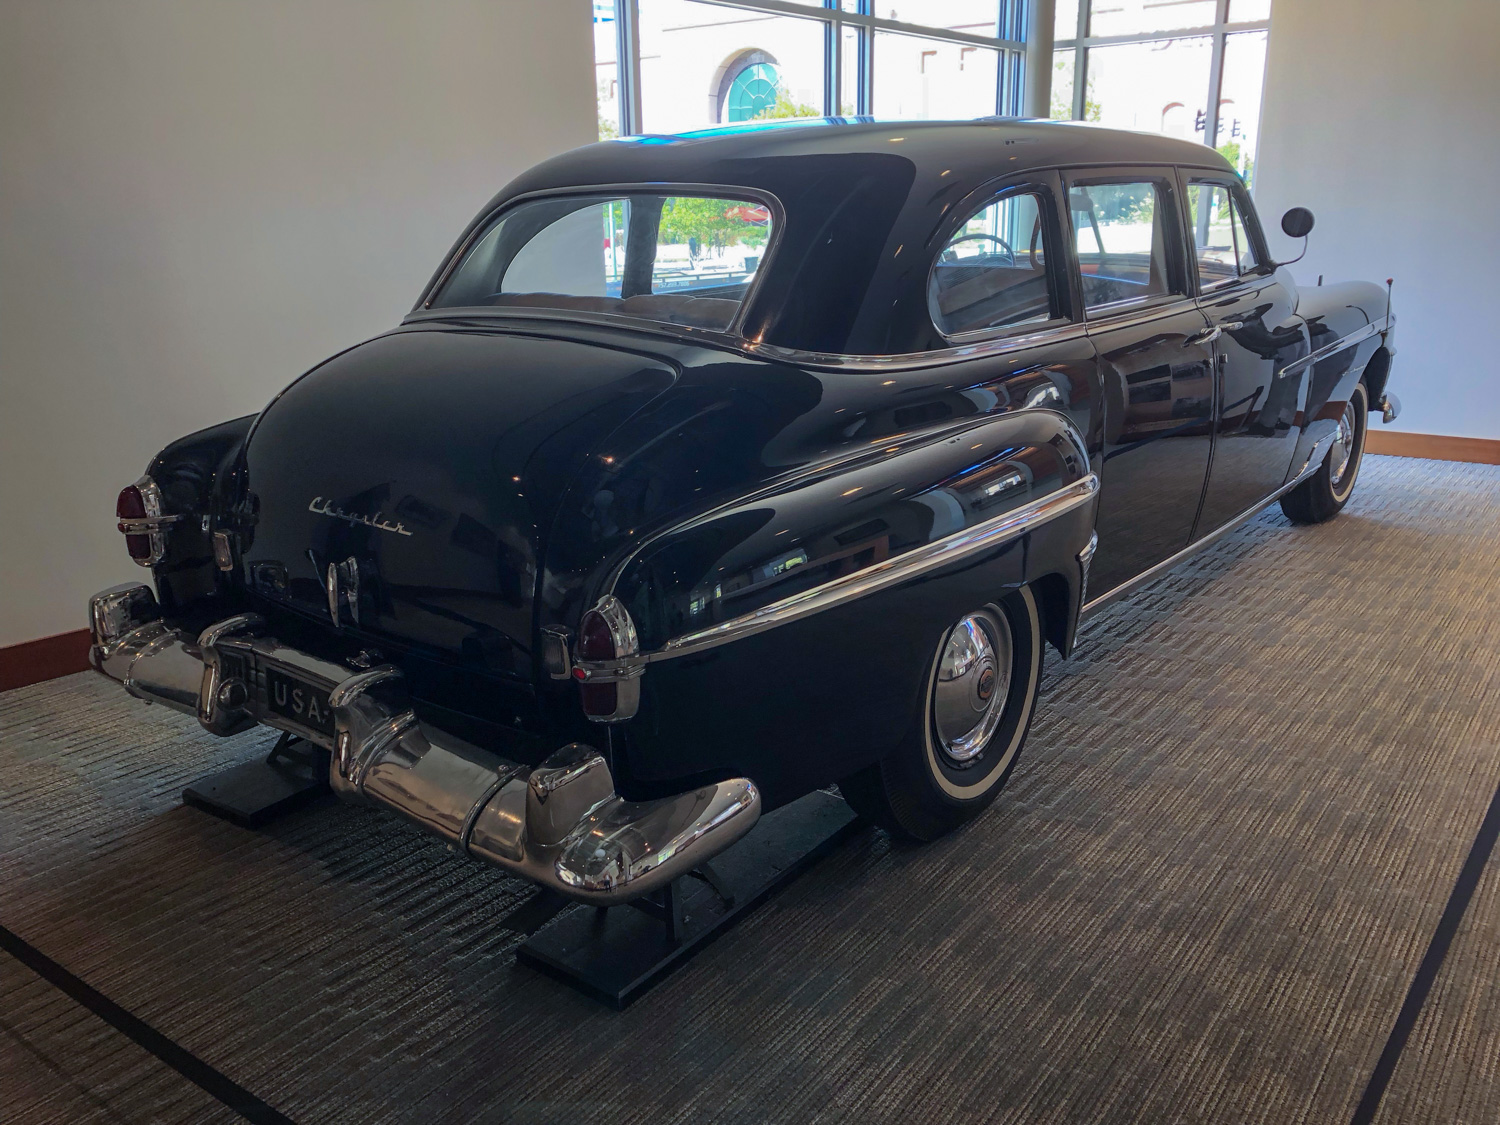 To reach the spare tire compartment of MacArthur's 1950 Chrysler Crown Imperial limousine, the rear bumper had to be removed.